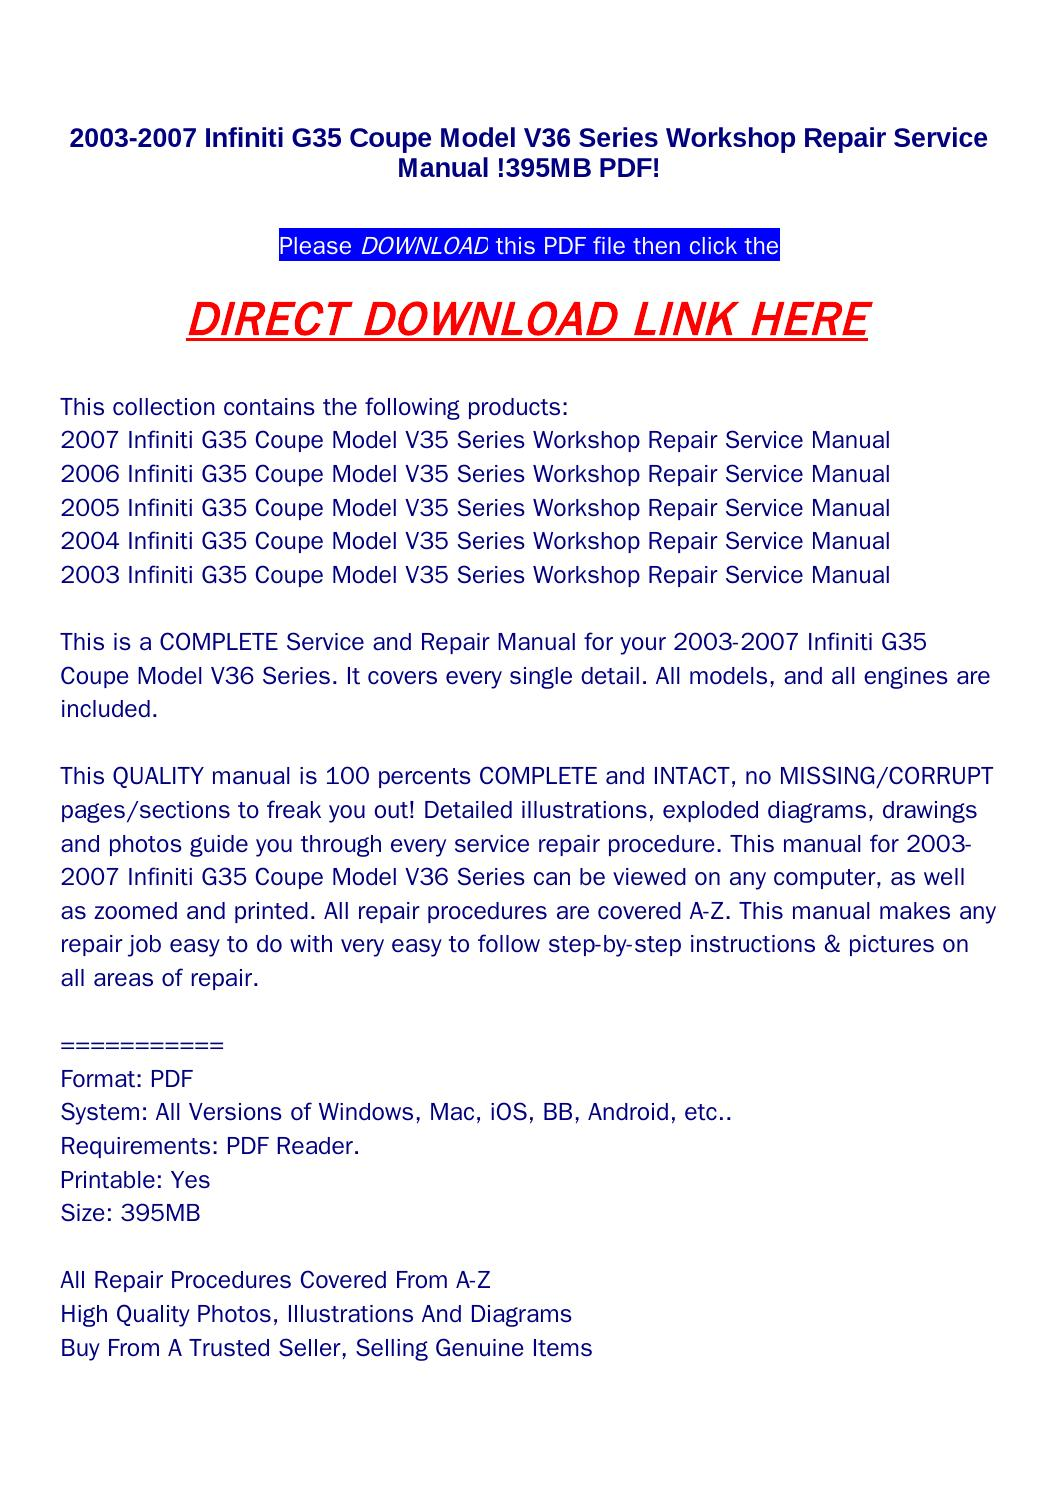 2003 2007 infiniti g35 coupe model v36 series workshop repair service manual  !395mb pdf! by returnqqv - issuu